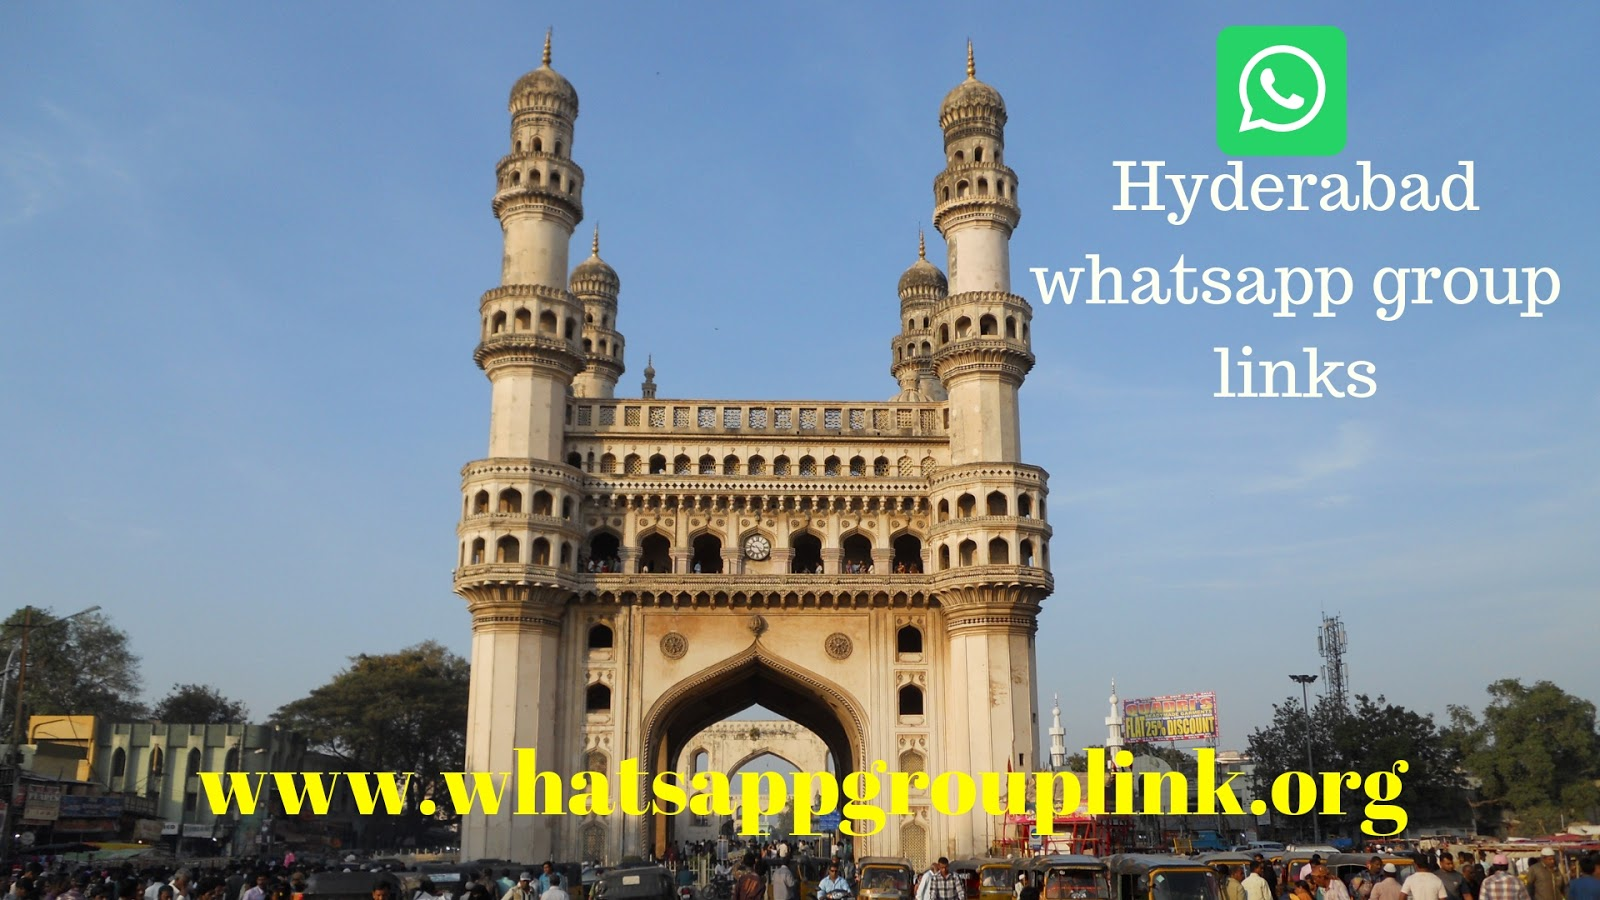 JOIN HYDERABAD WHATSAPP GROUP LINKS LIST - Whatsapp Group Links